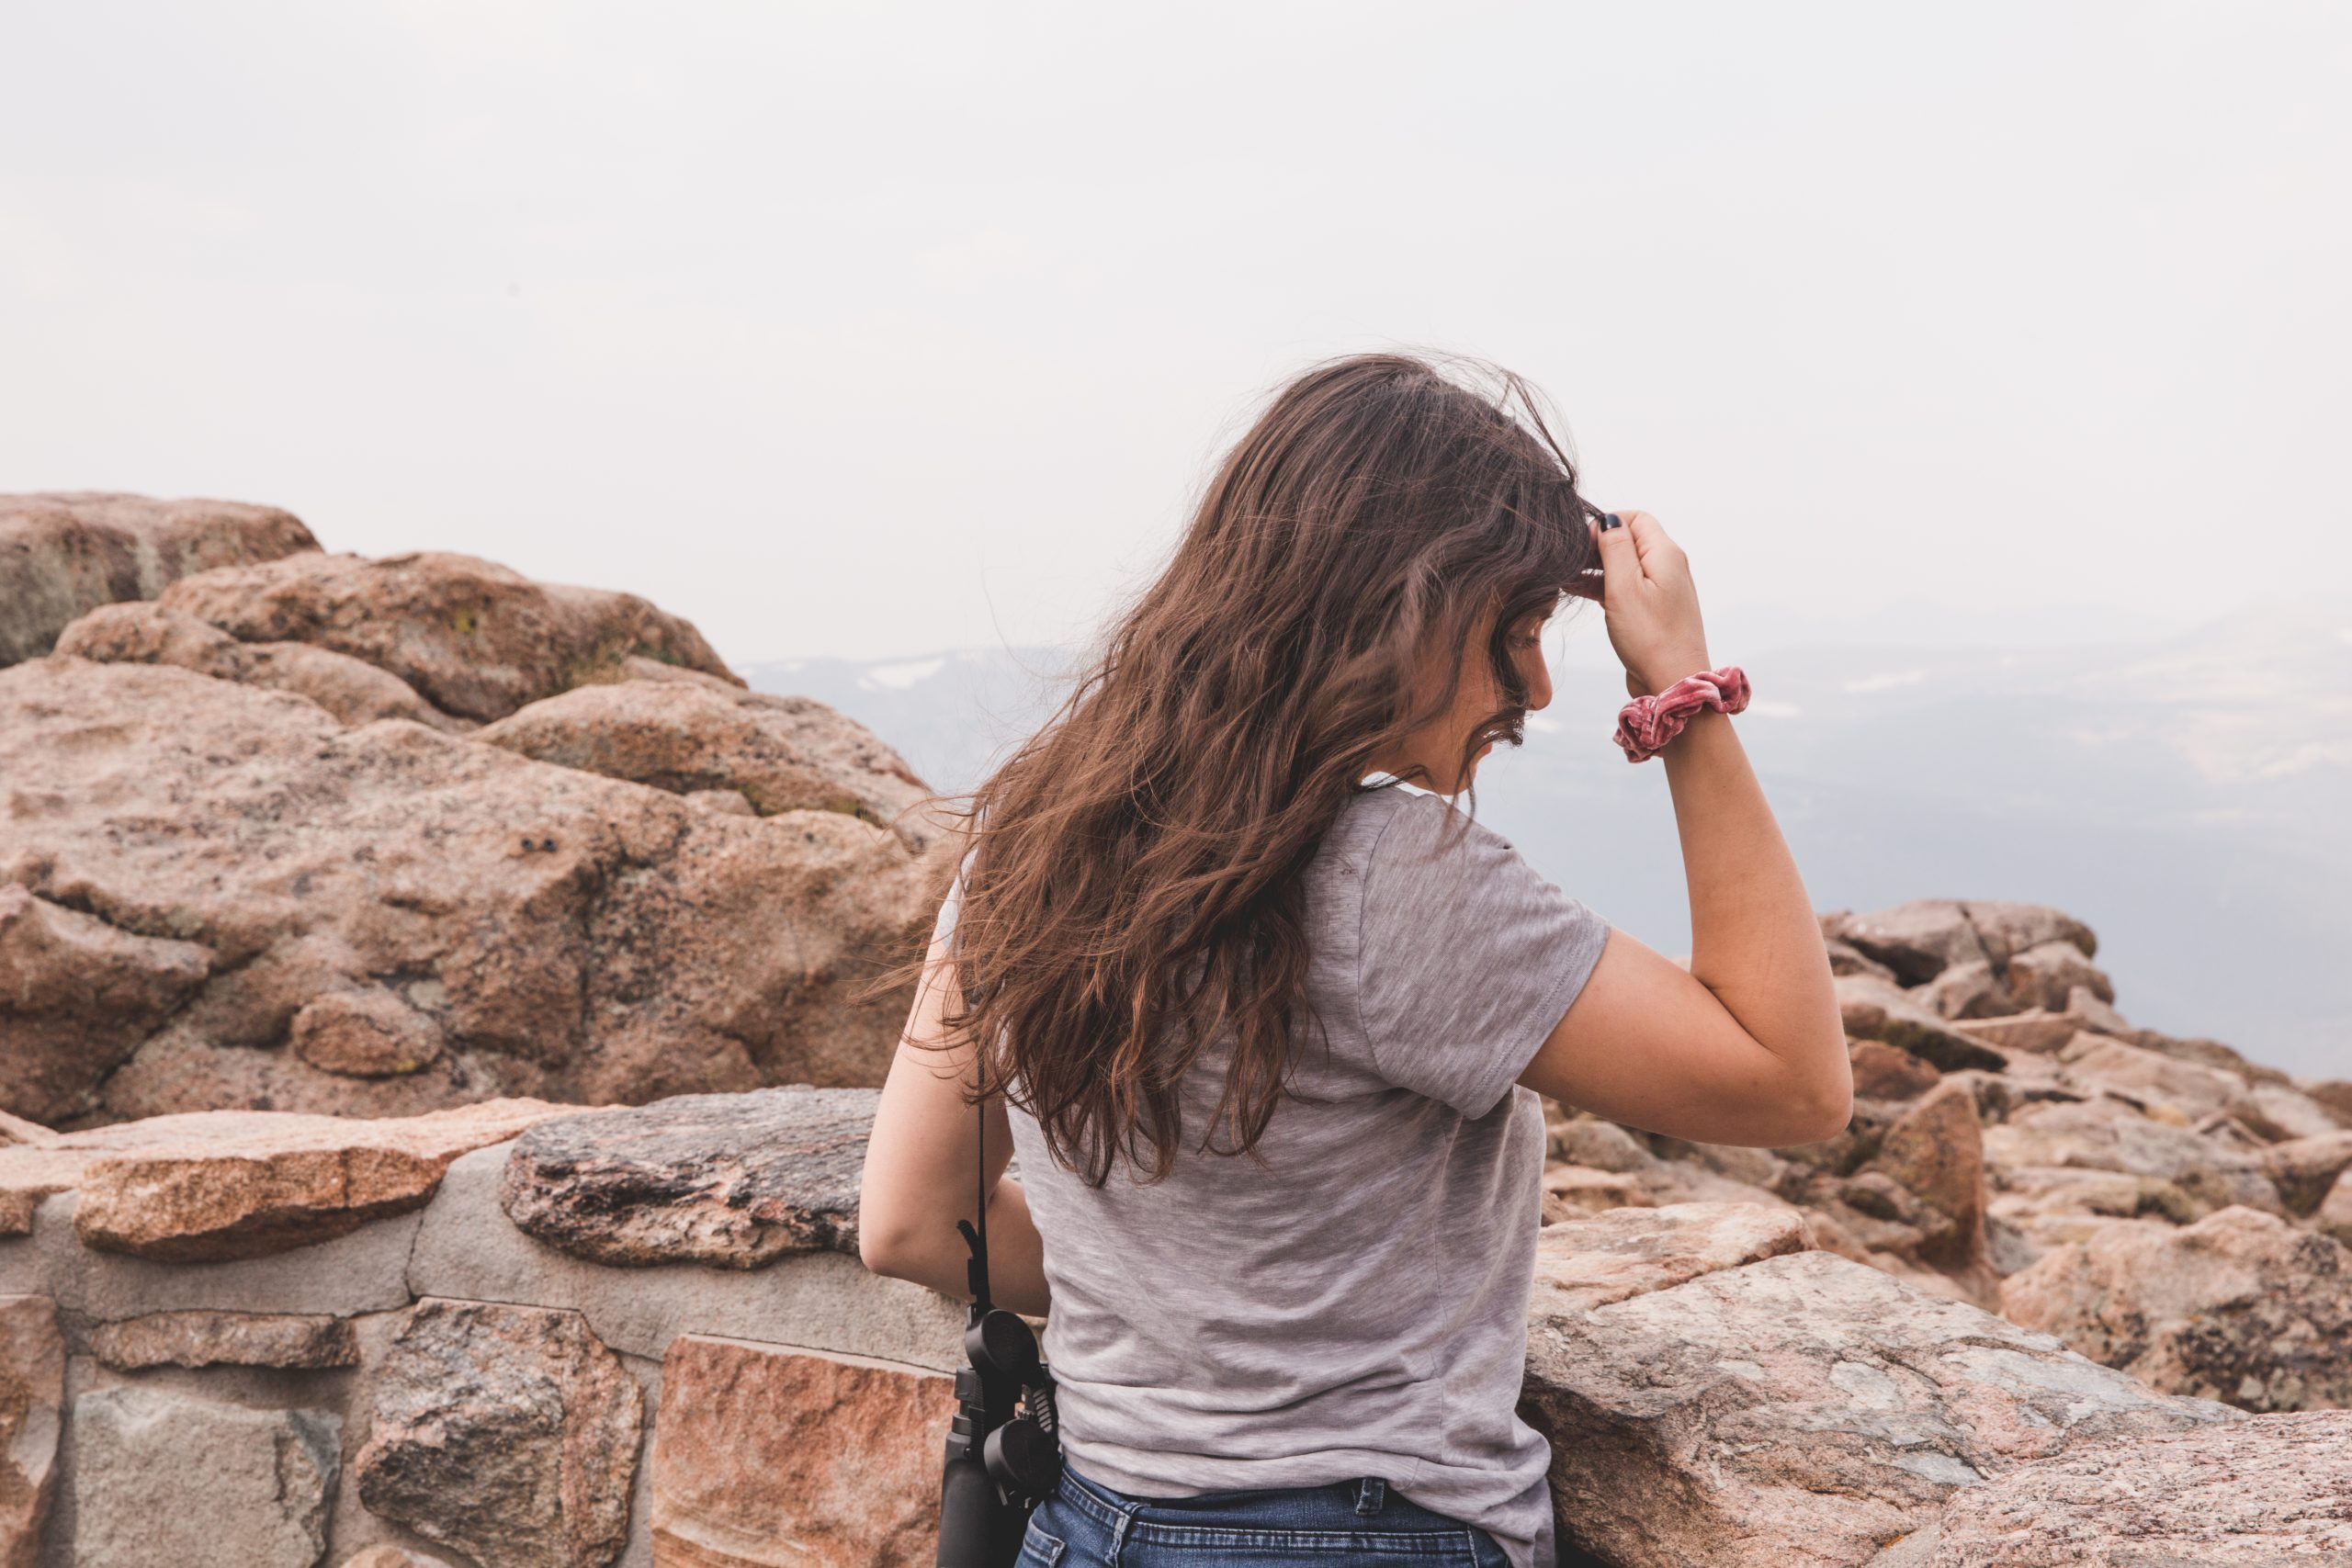 Kelsey standing with her back to the camera, touching her hair with a pink scrunchie on her wrist. She looks out at the mountains in Rocky Mountain National Park in Colorado.